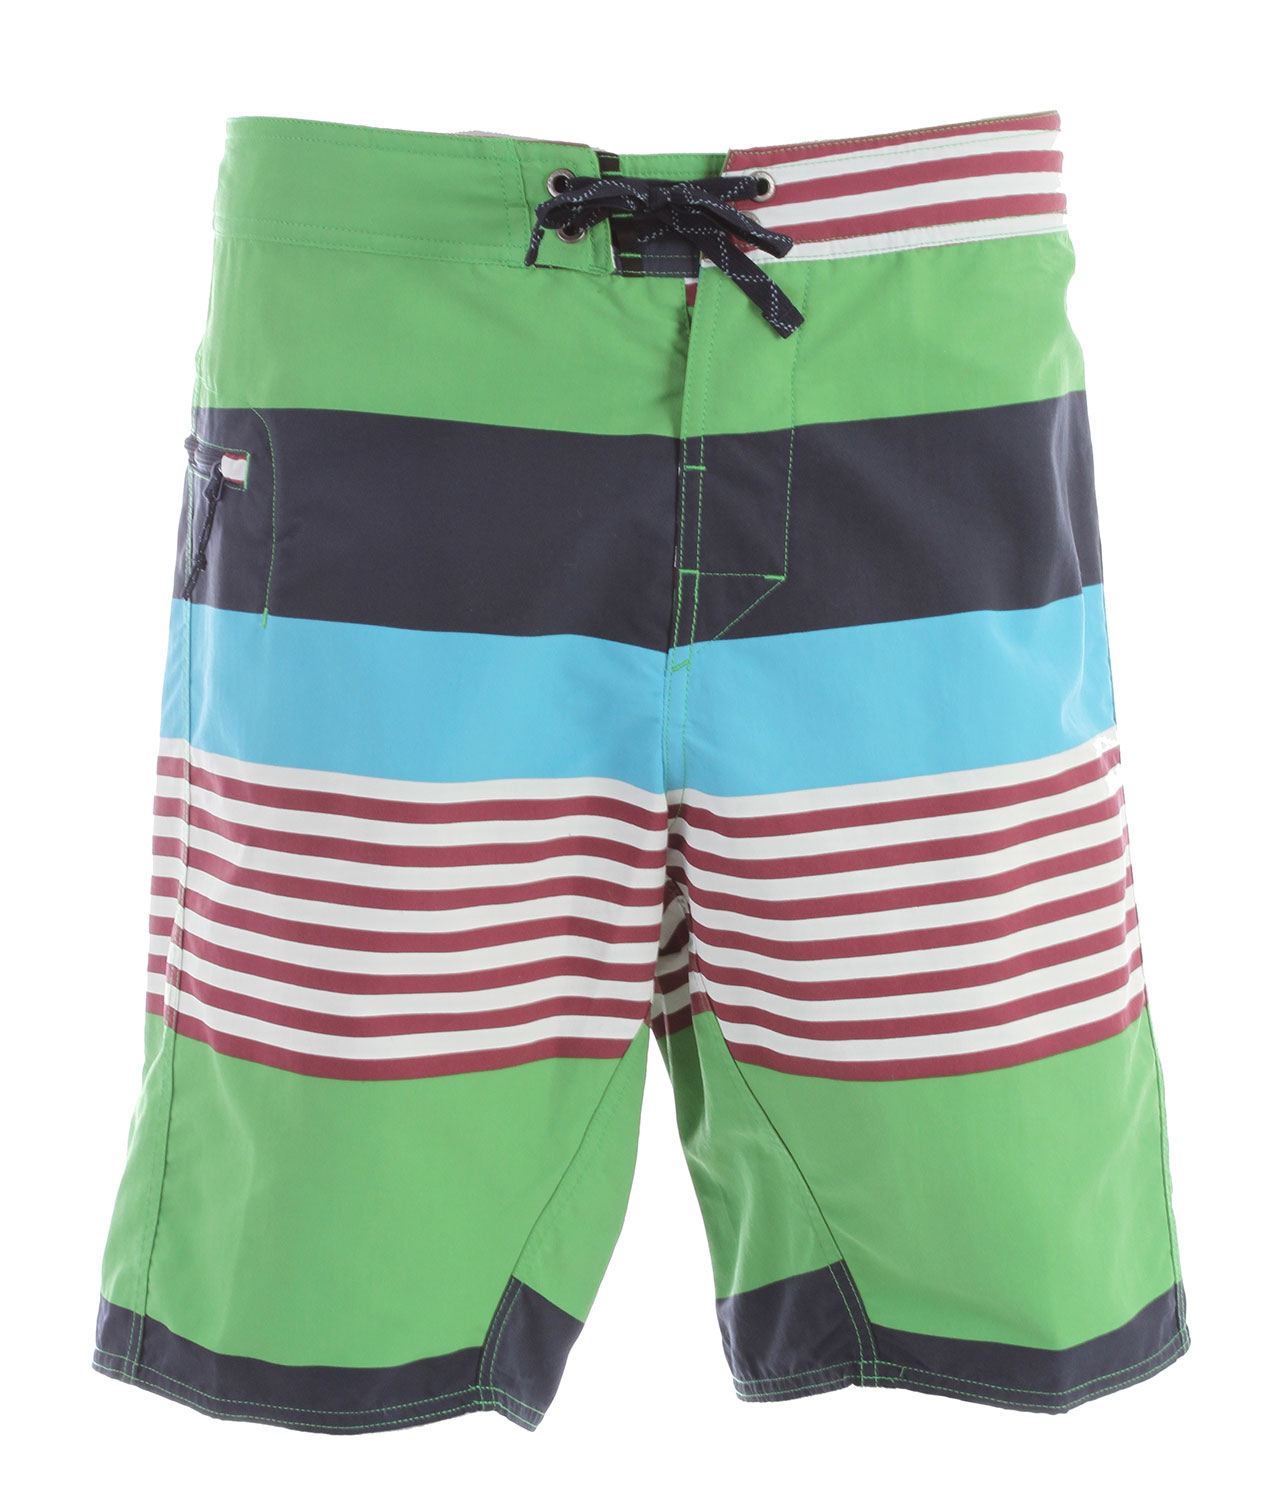 "Surf Tried and true, live-in-them board shorts made of Supplex nylon with a DWR (durable water repellent) finish; 21? outseam. FABRIC: 4.3-oz 100% Supplex nylon with a DWR finishKey Features of the Patagonia Wavefarer 21In Boardshorts: Regular fit Made of a durable and quick-drying Supplex nylon fabric, with a DWR finish 3-piece-self-lined waistband contours to hip; flat-lying fly with single rubber button; functional mesh gasket easily drains; ladder-lock drawstring closure; turned, bartacked drawstring is durable and adds security Self-draining pocket on right thigh has a non-corrosive, recyclable plastic zipper, internal key loop and added zipper pull for ease of use Forward inseam at crotch eliminates skin chafe 21"" outseam - $41.95"